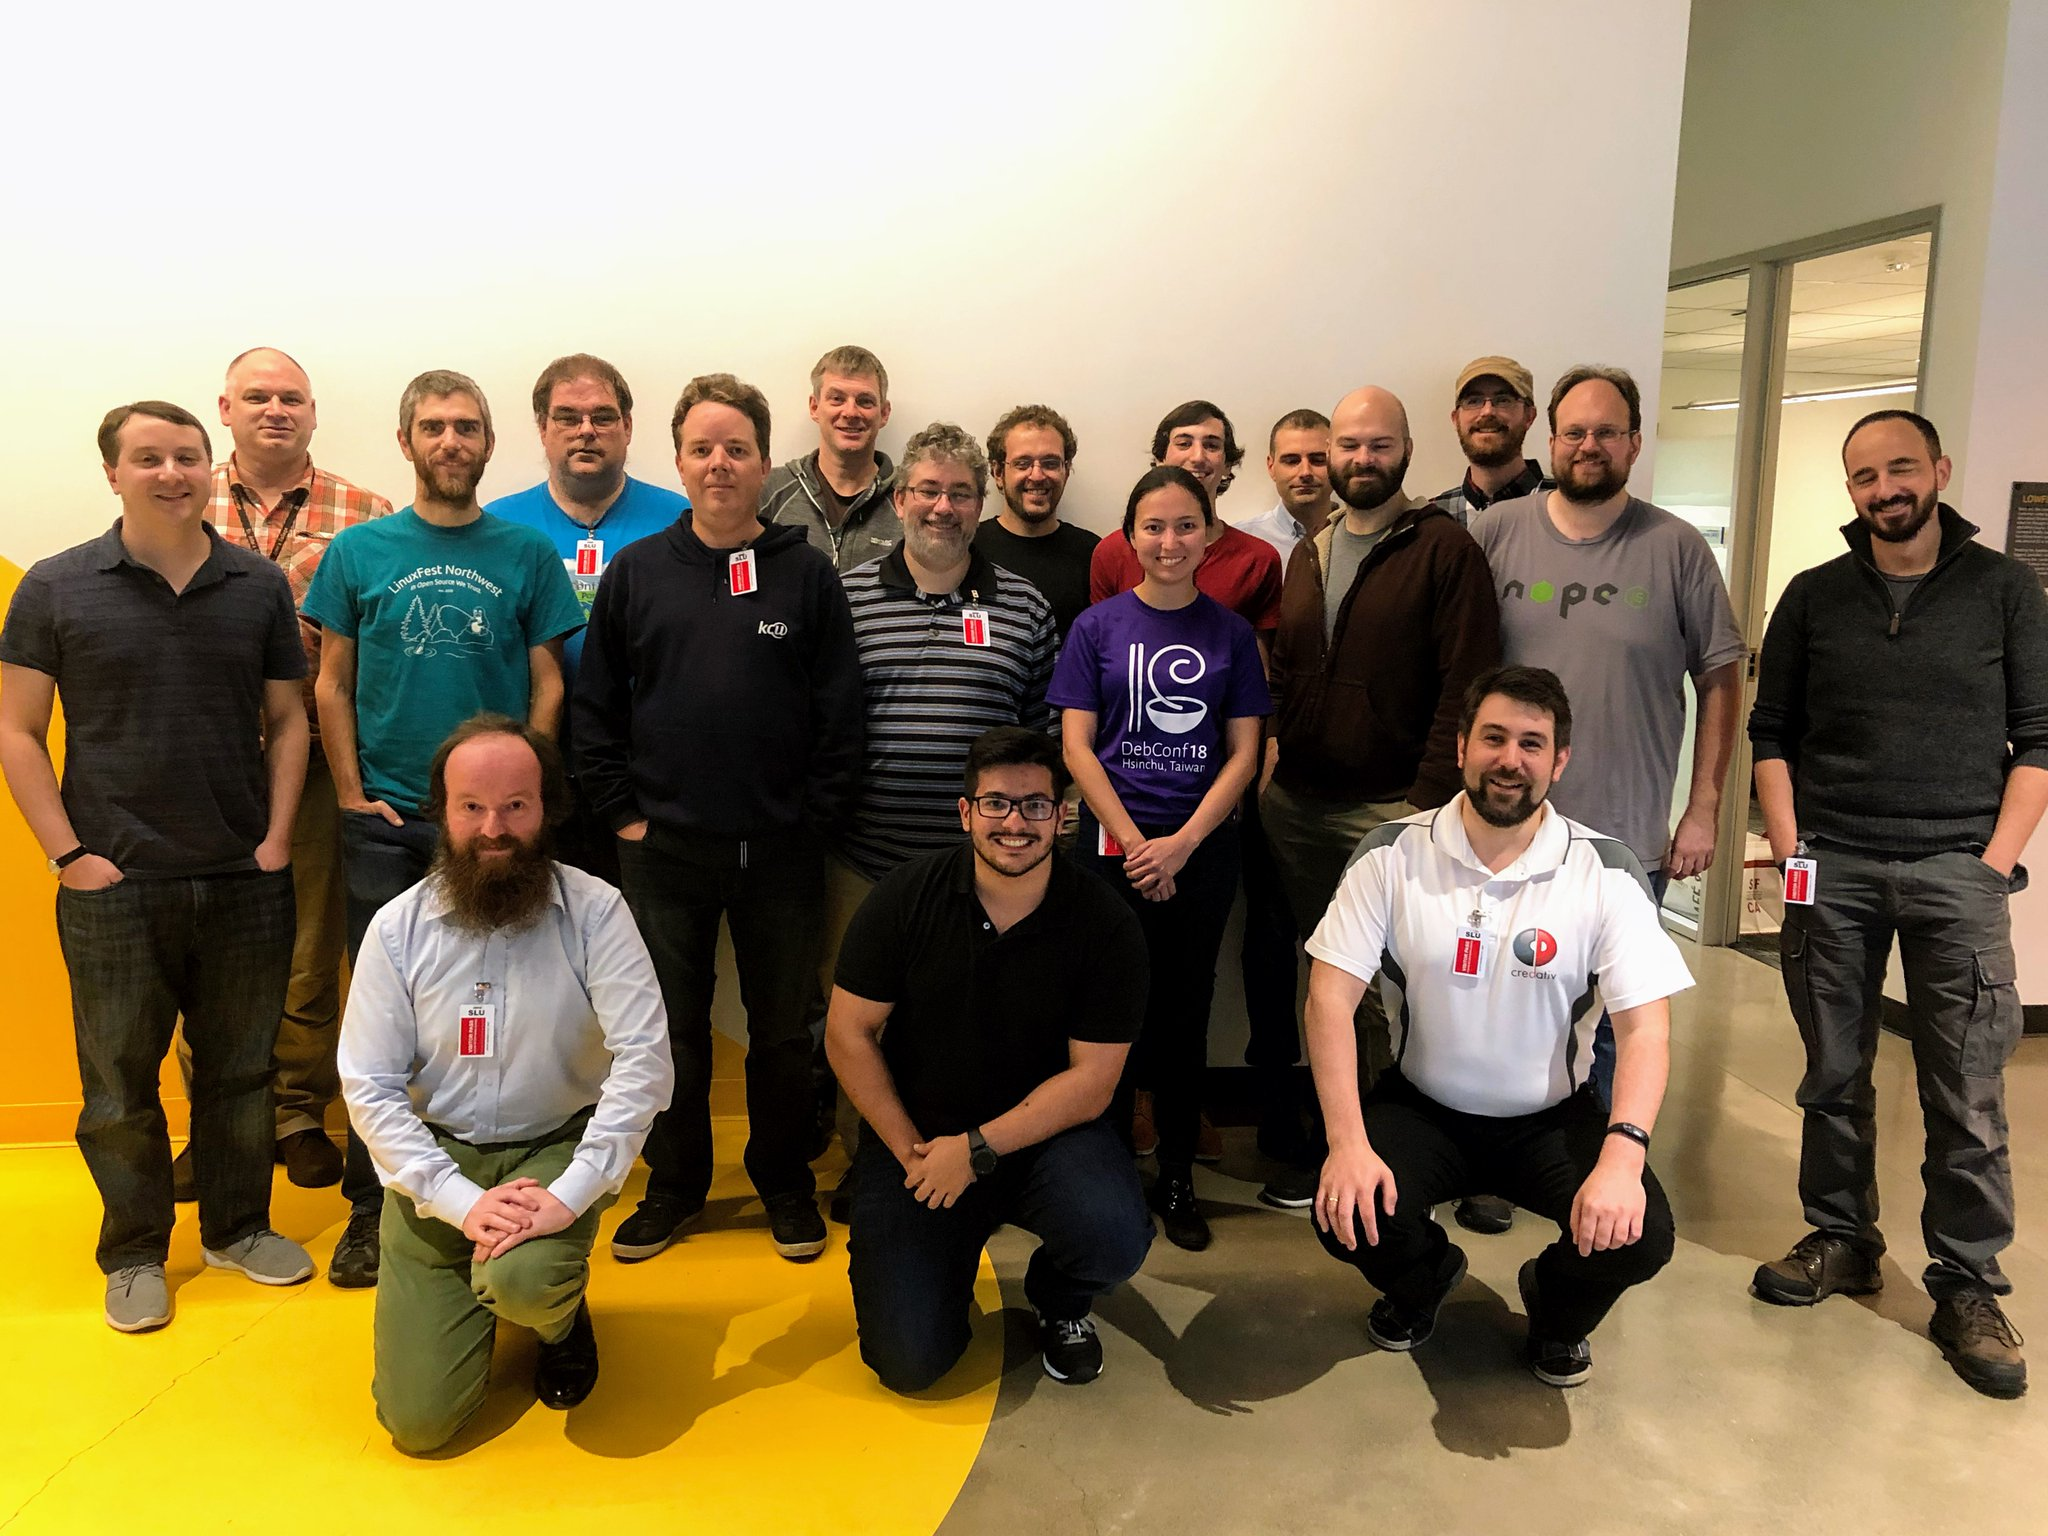 Group photo of the participants in the Cloud Team Sprint